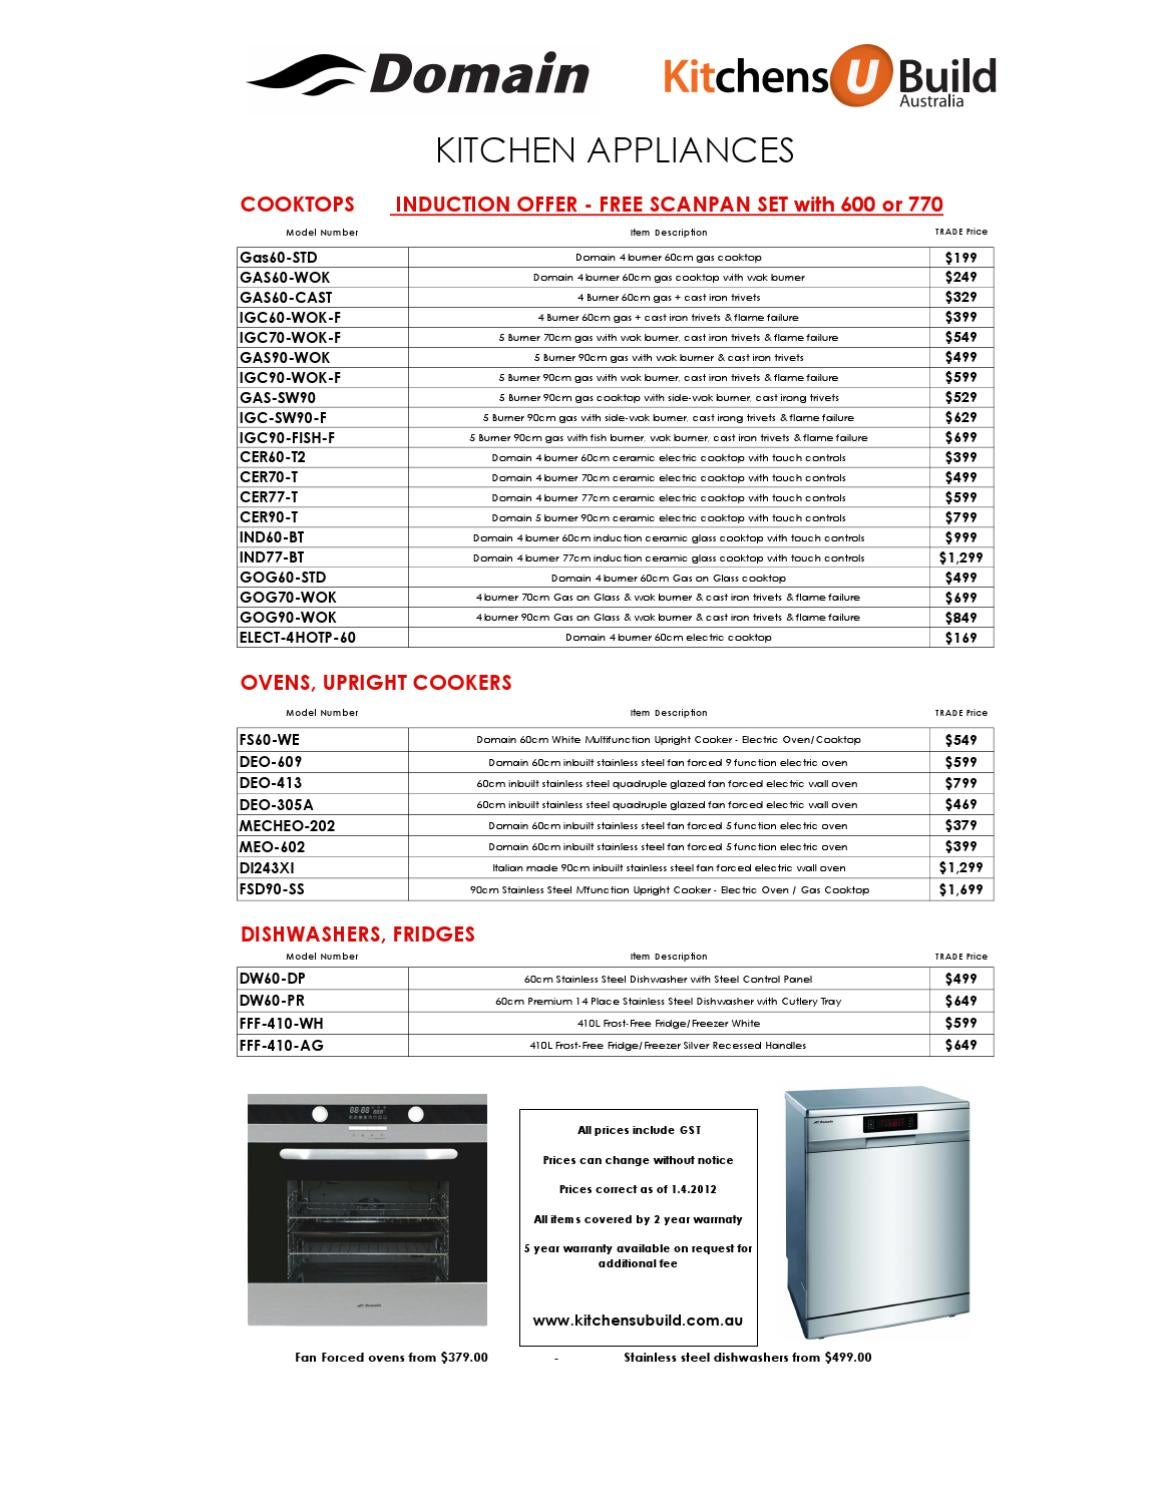 Domain appliance price list 2012 by carol lynne mitchell for Mitchell homes price list